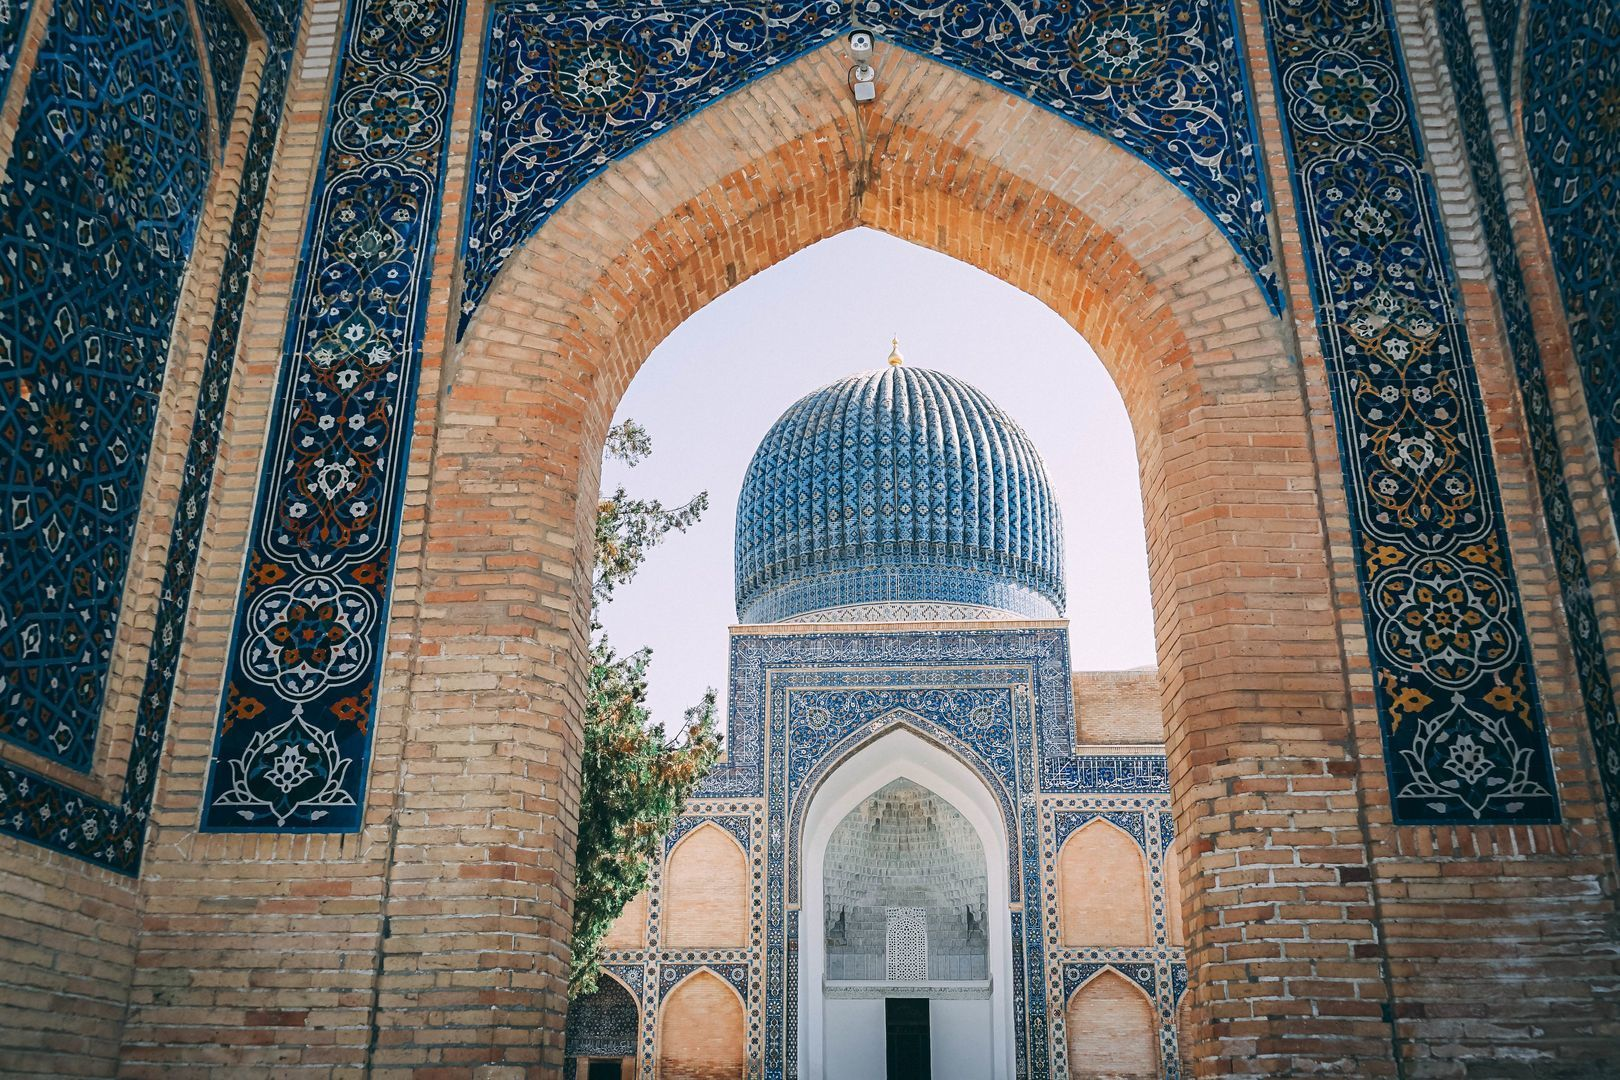 Central Asia historical cities tour